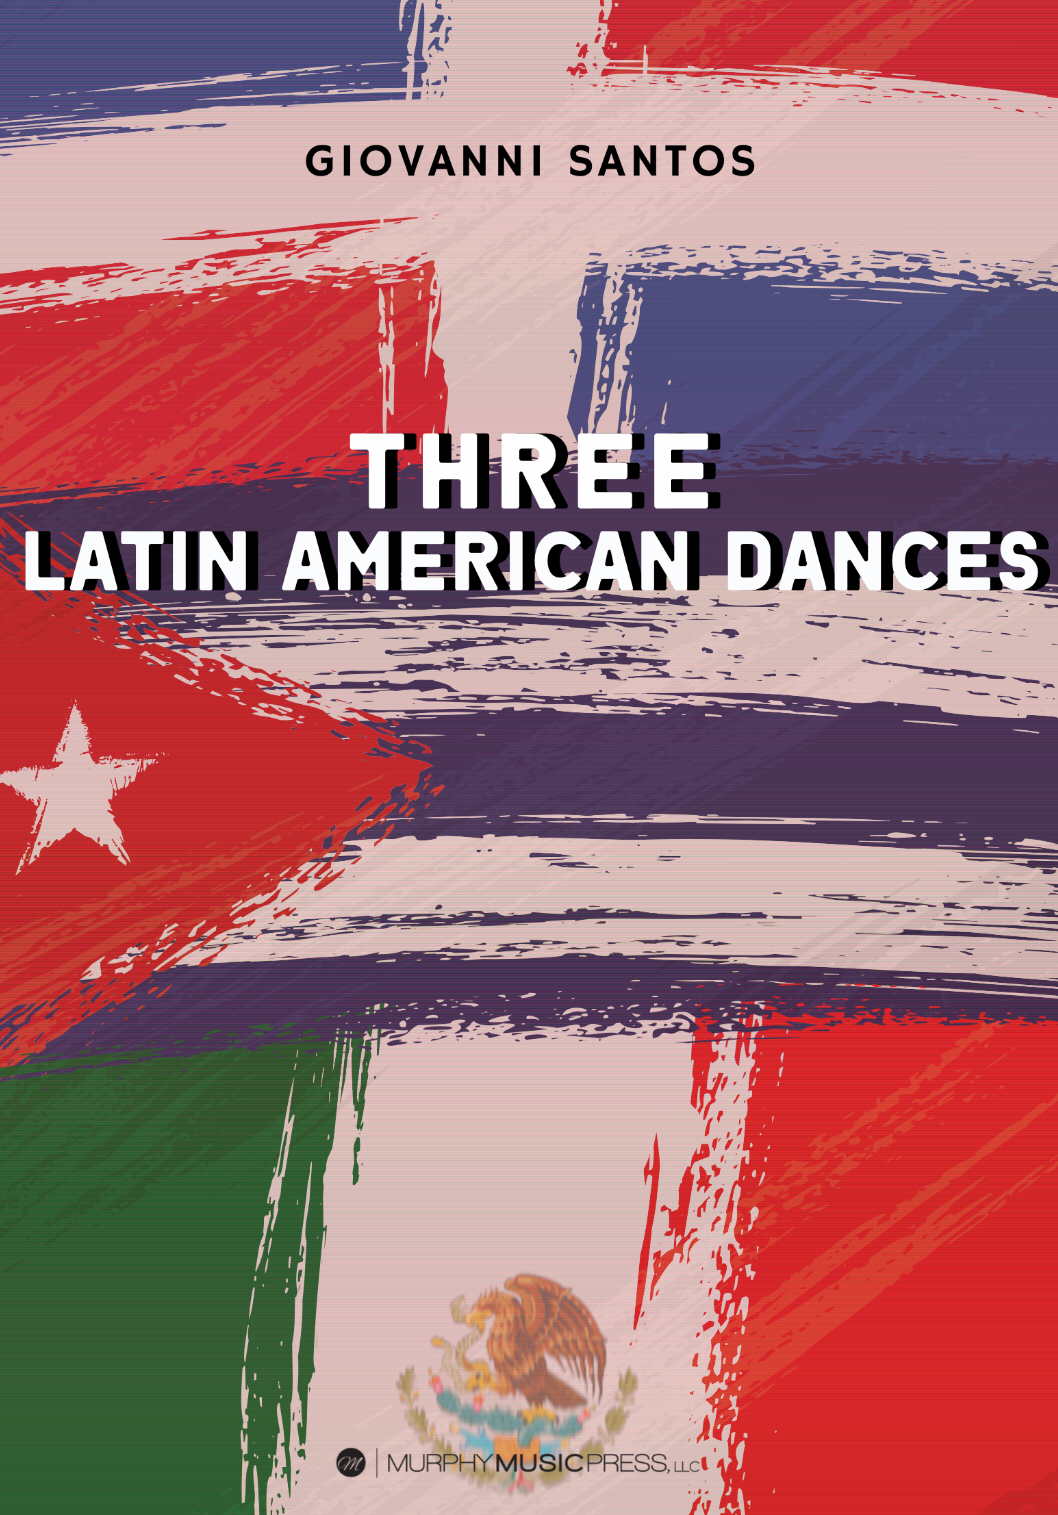 Three Latin American Dances by Giovanni Santos